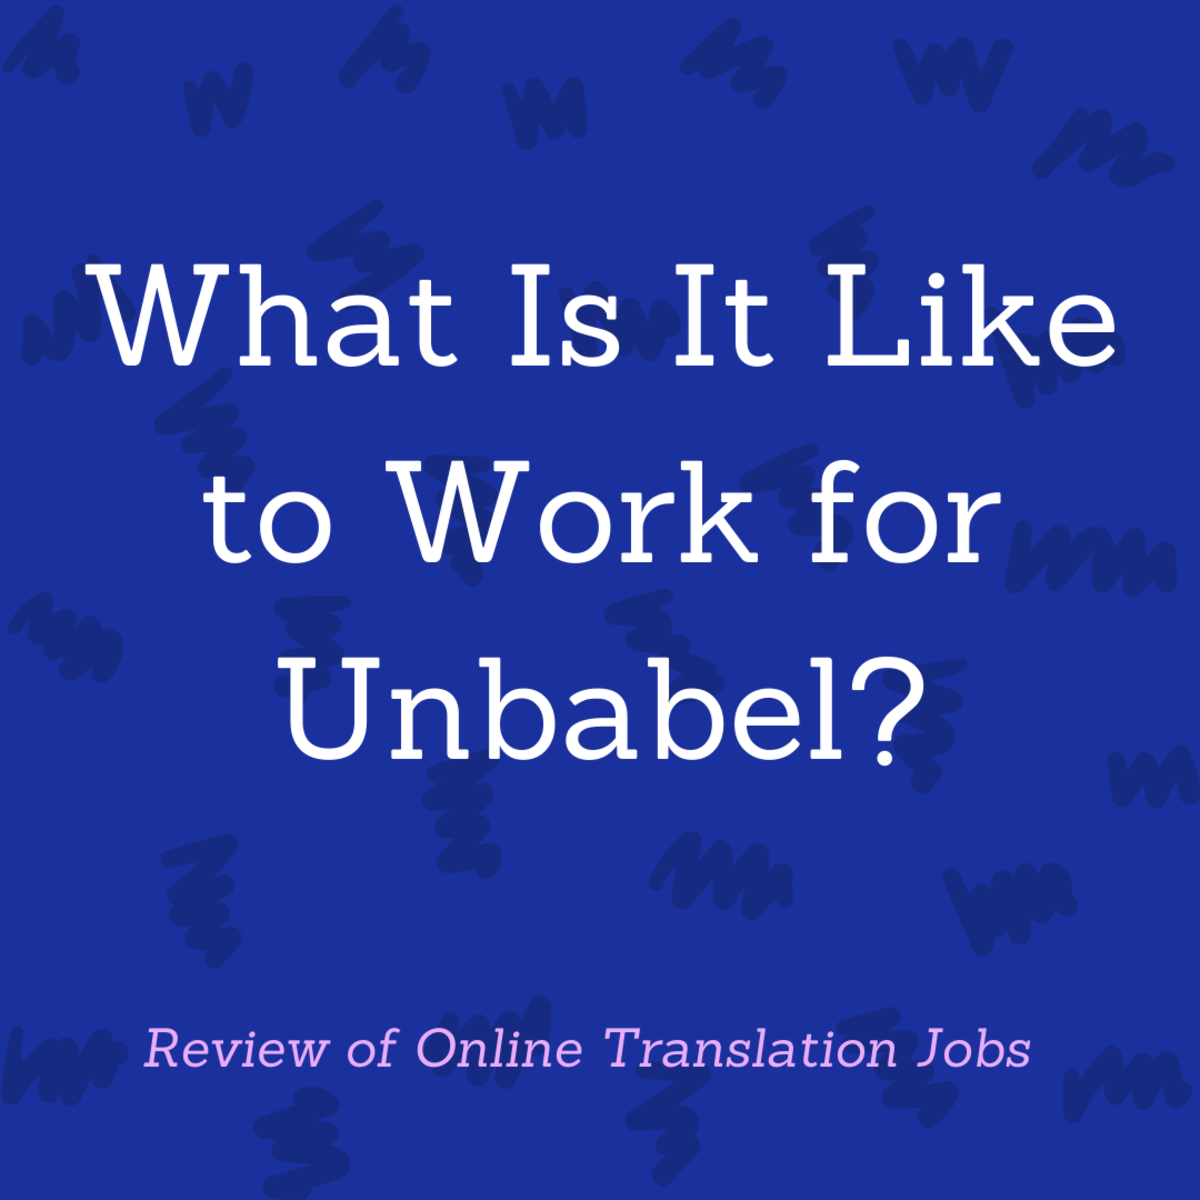 Unbabel Review: My Experience Translating for the Site